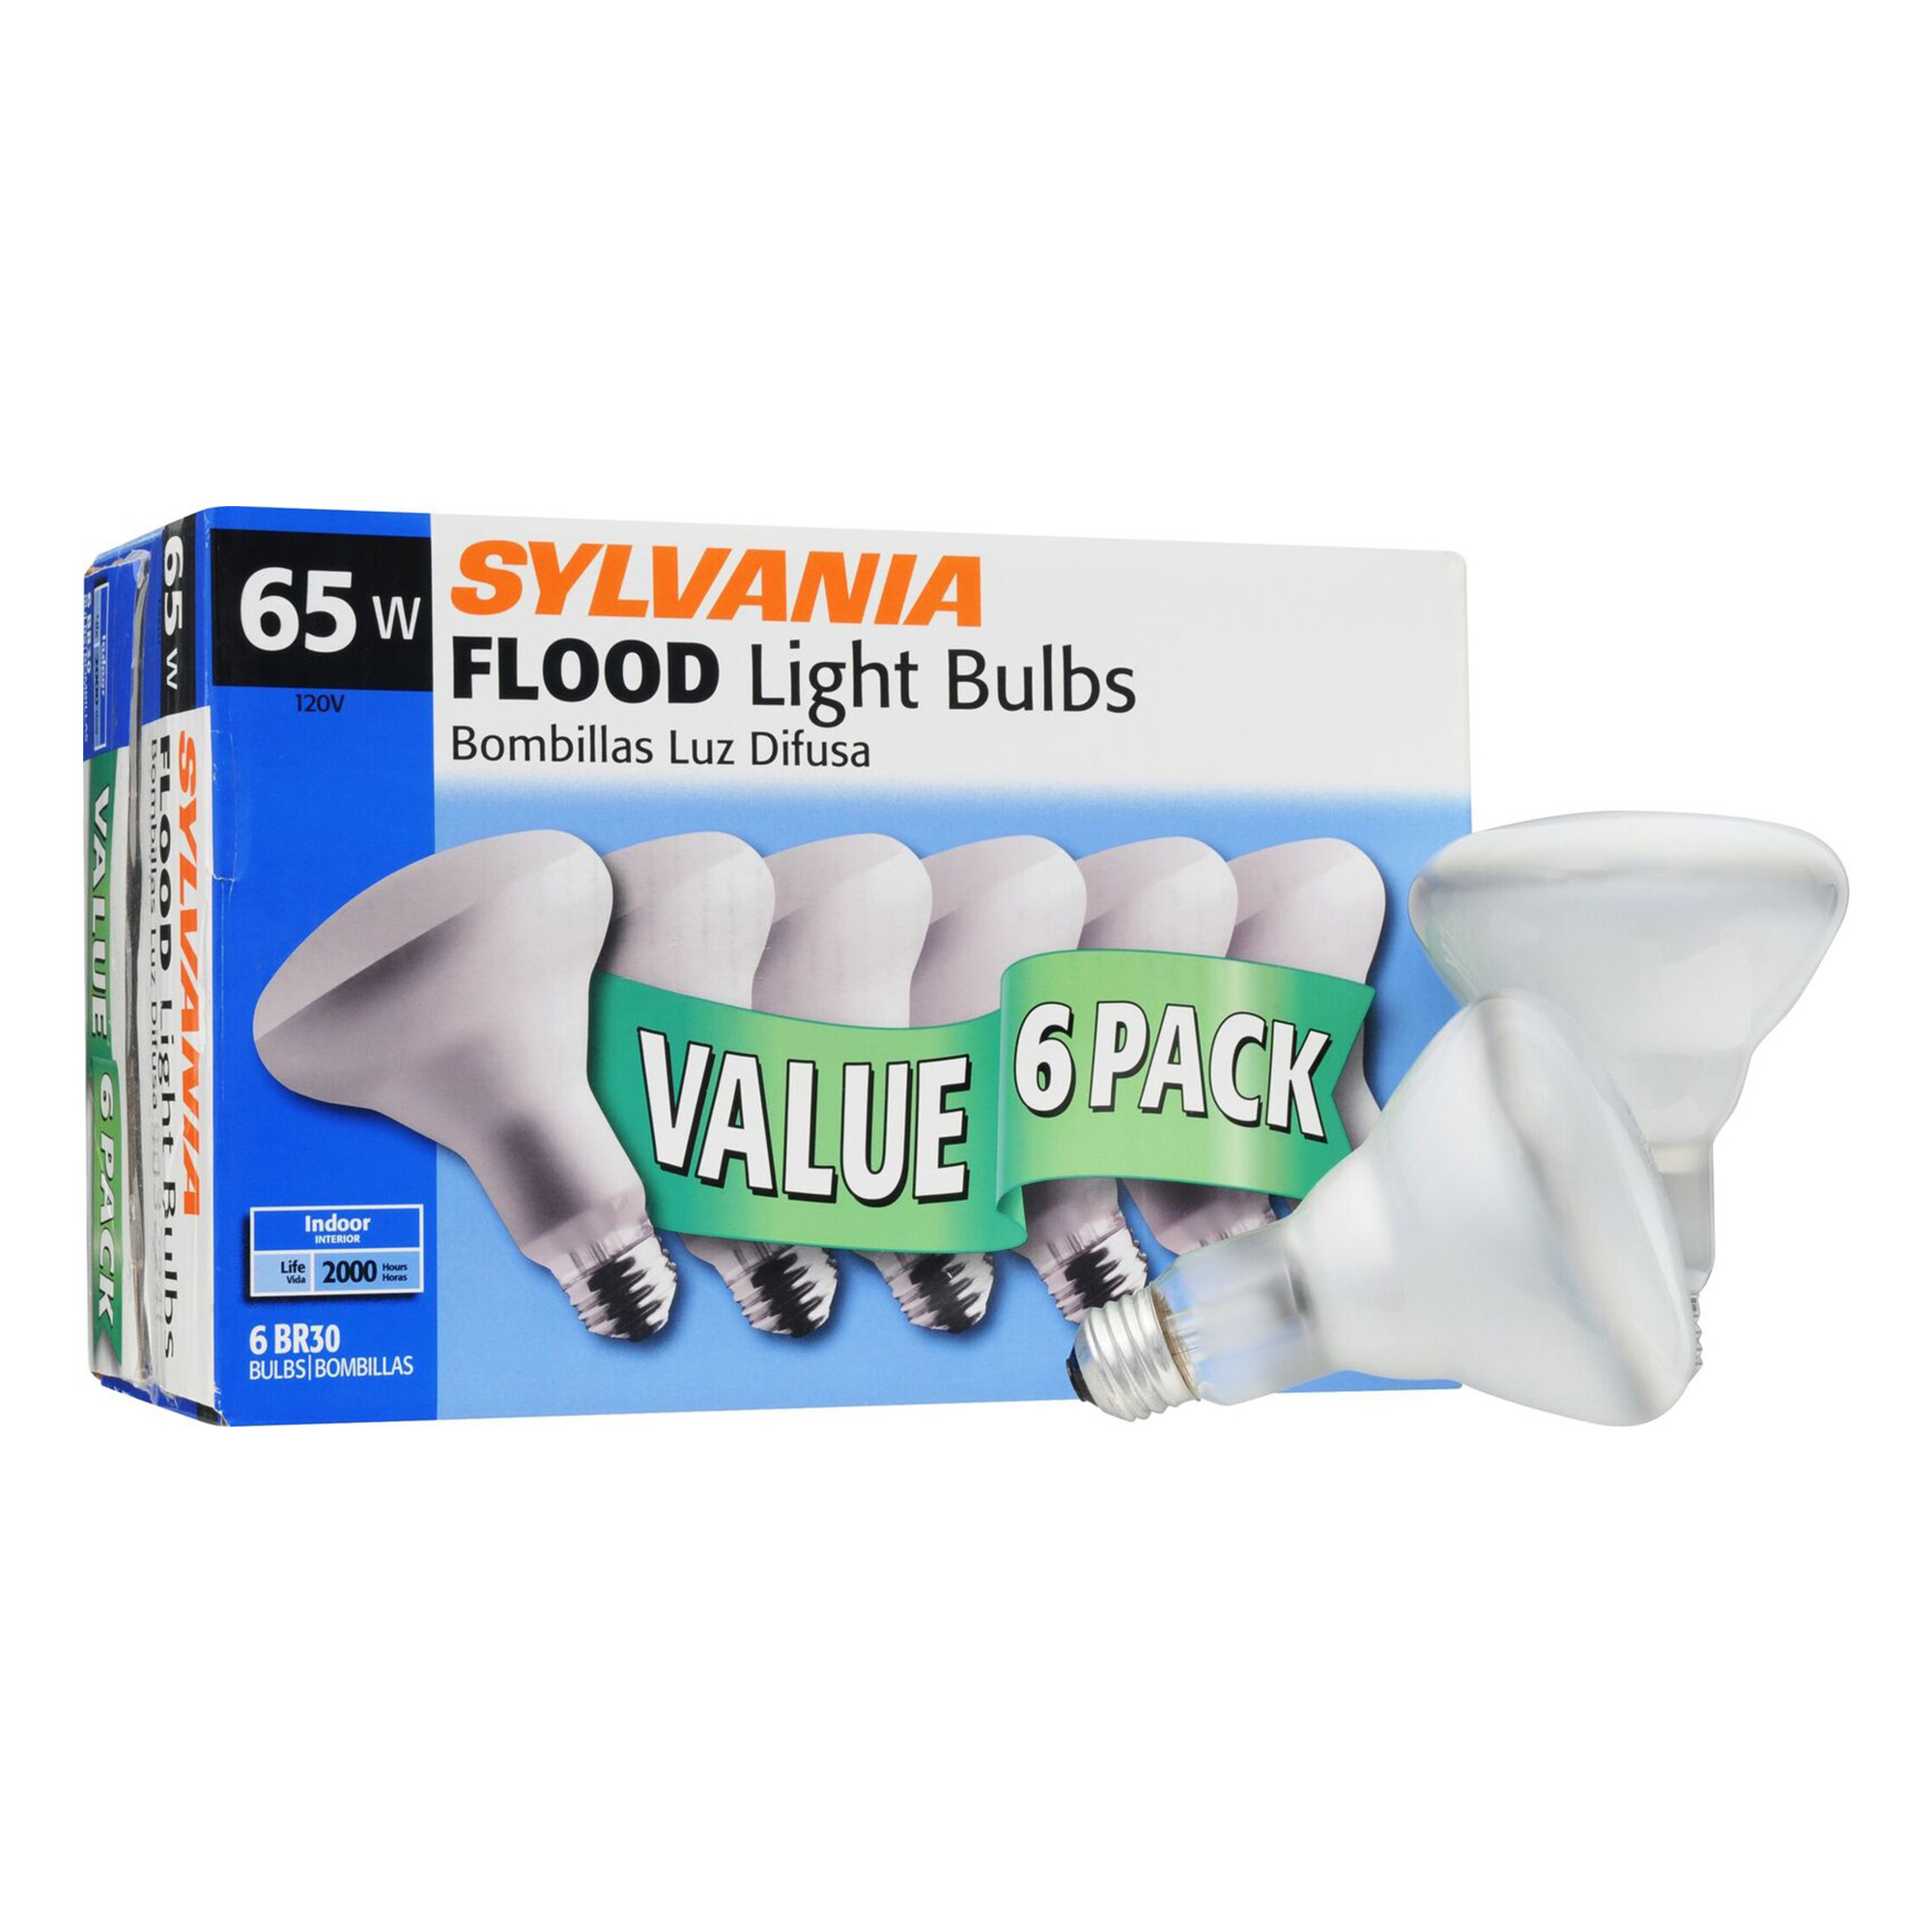 Sylvania 65W BR30 Incandescent Flood Light Bulbs, 6 Pack